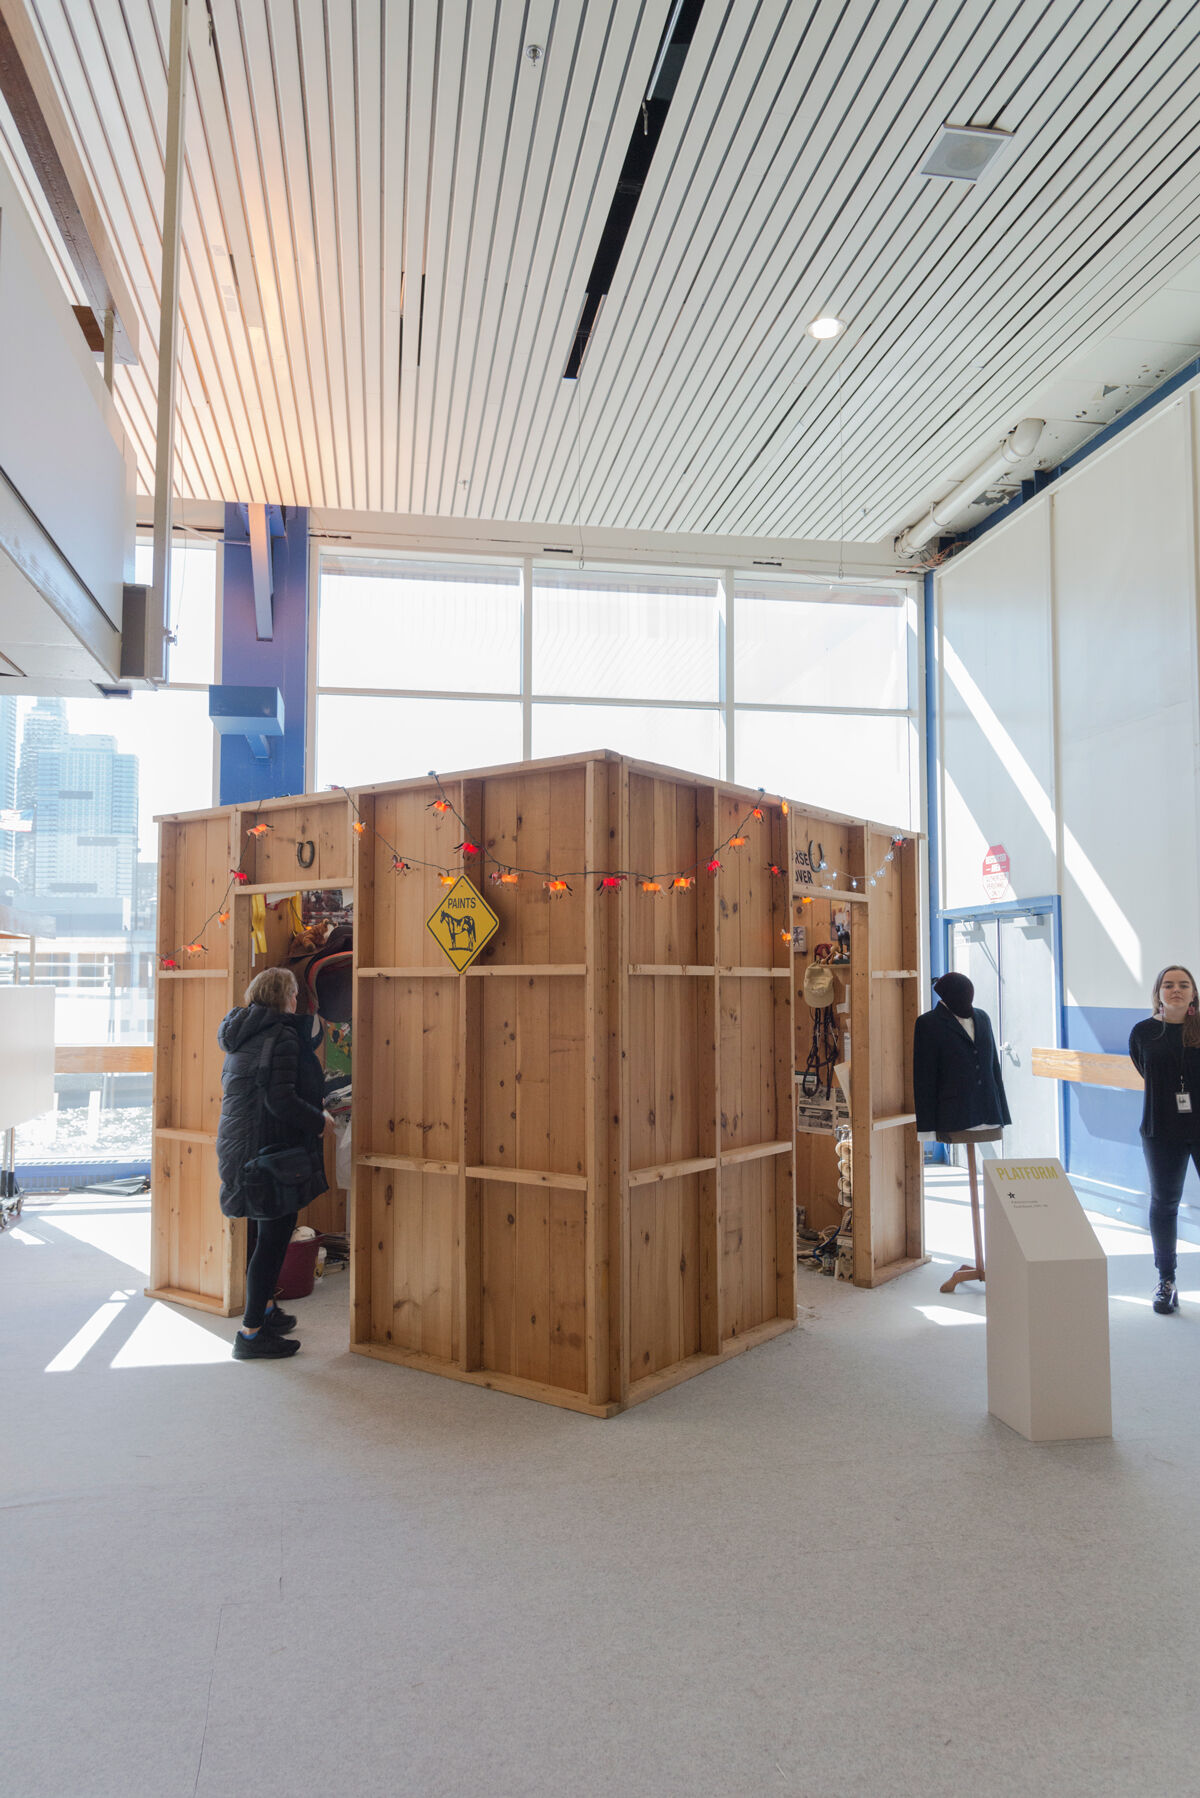 Madison Erects Giant Phallic Tower To >> The Stories Behind 5 Of The Armory Show S Largest Artworks Artsy